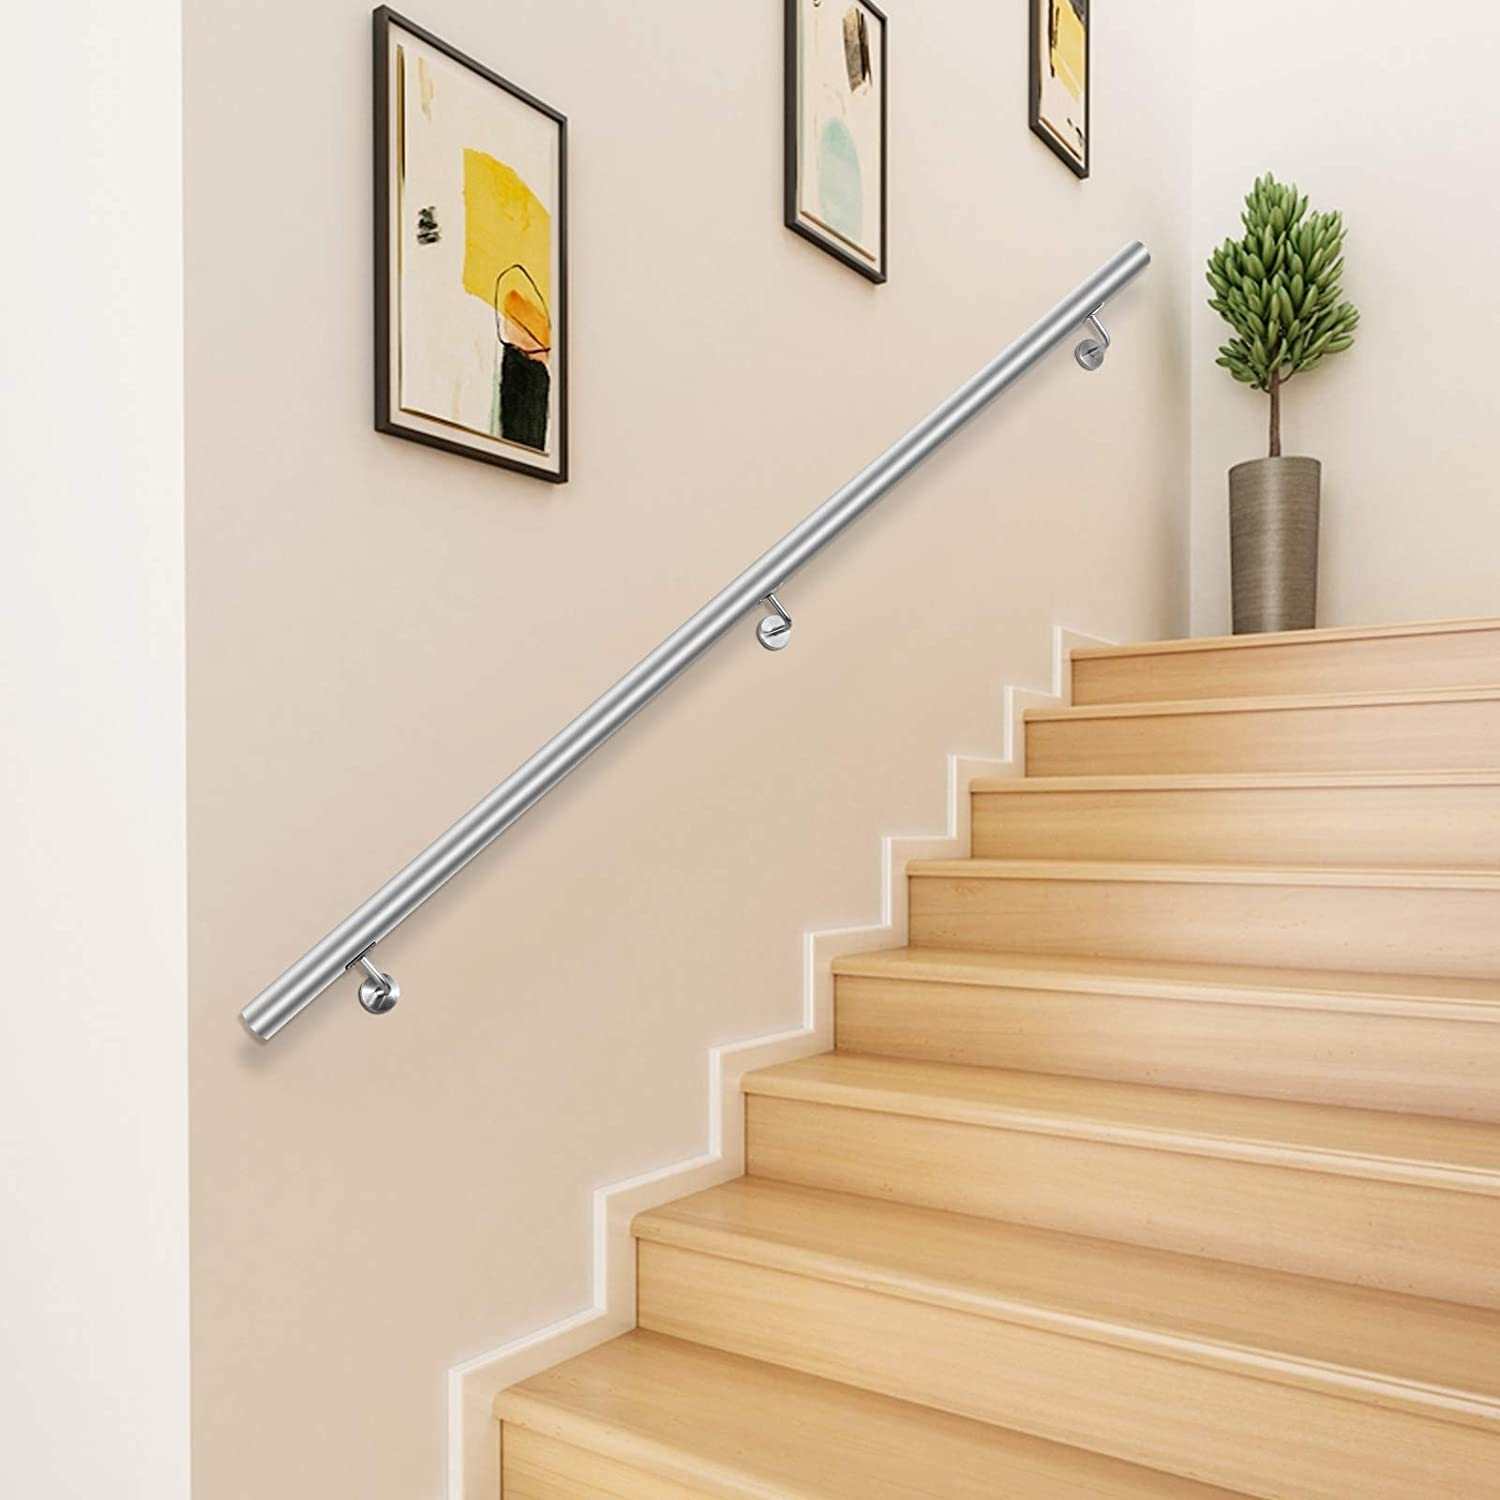 Happybuy 3 Feet Stair Handrail Stainless Steel Wall Stair Rail | Handrail For Stairs Indoor | Short Staircase | Victorian | Width Hand | Wall | Glass Panel Stainless Steel Handrail